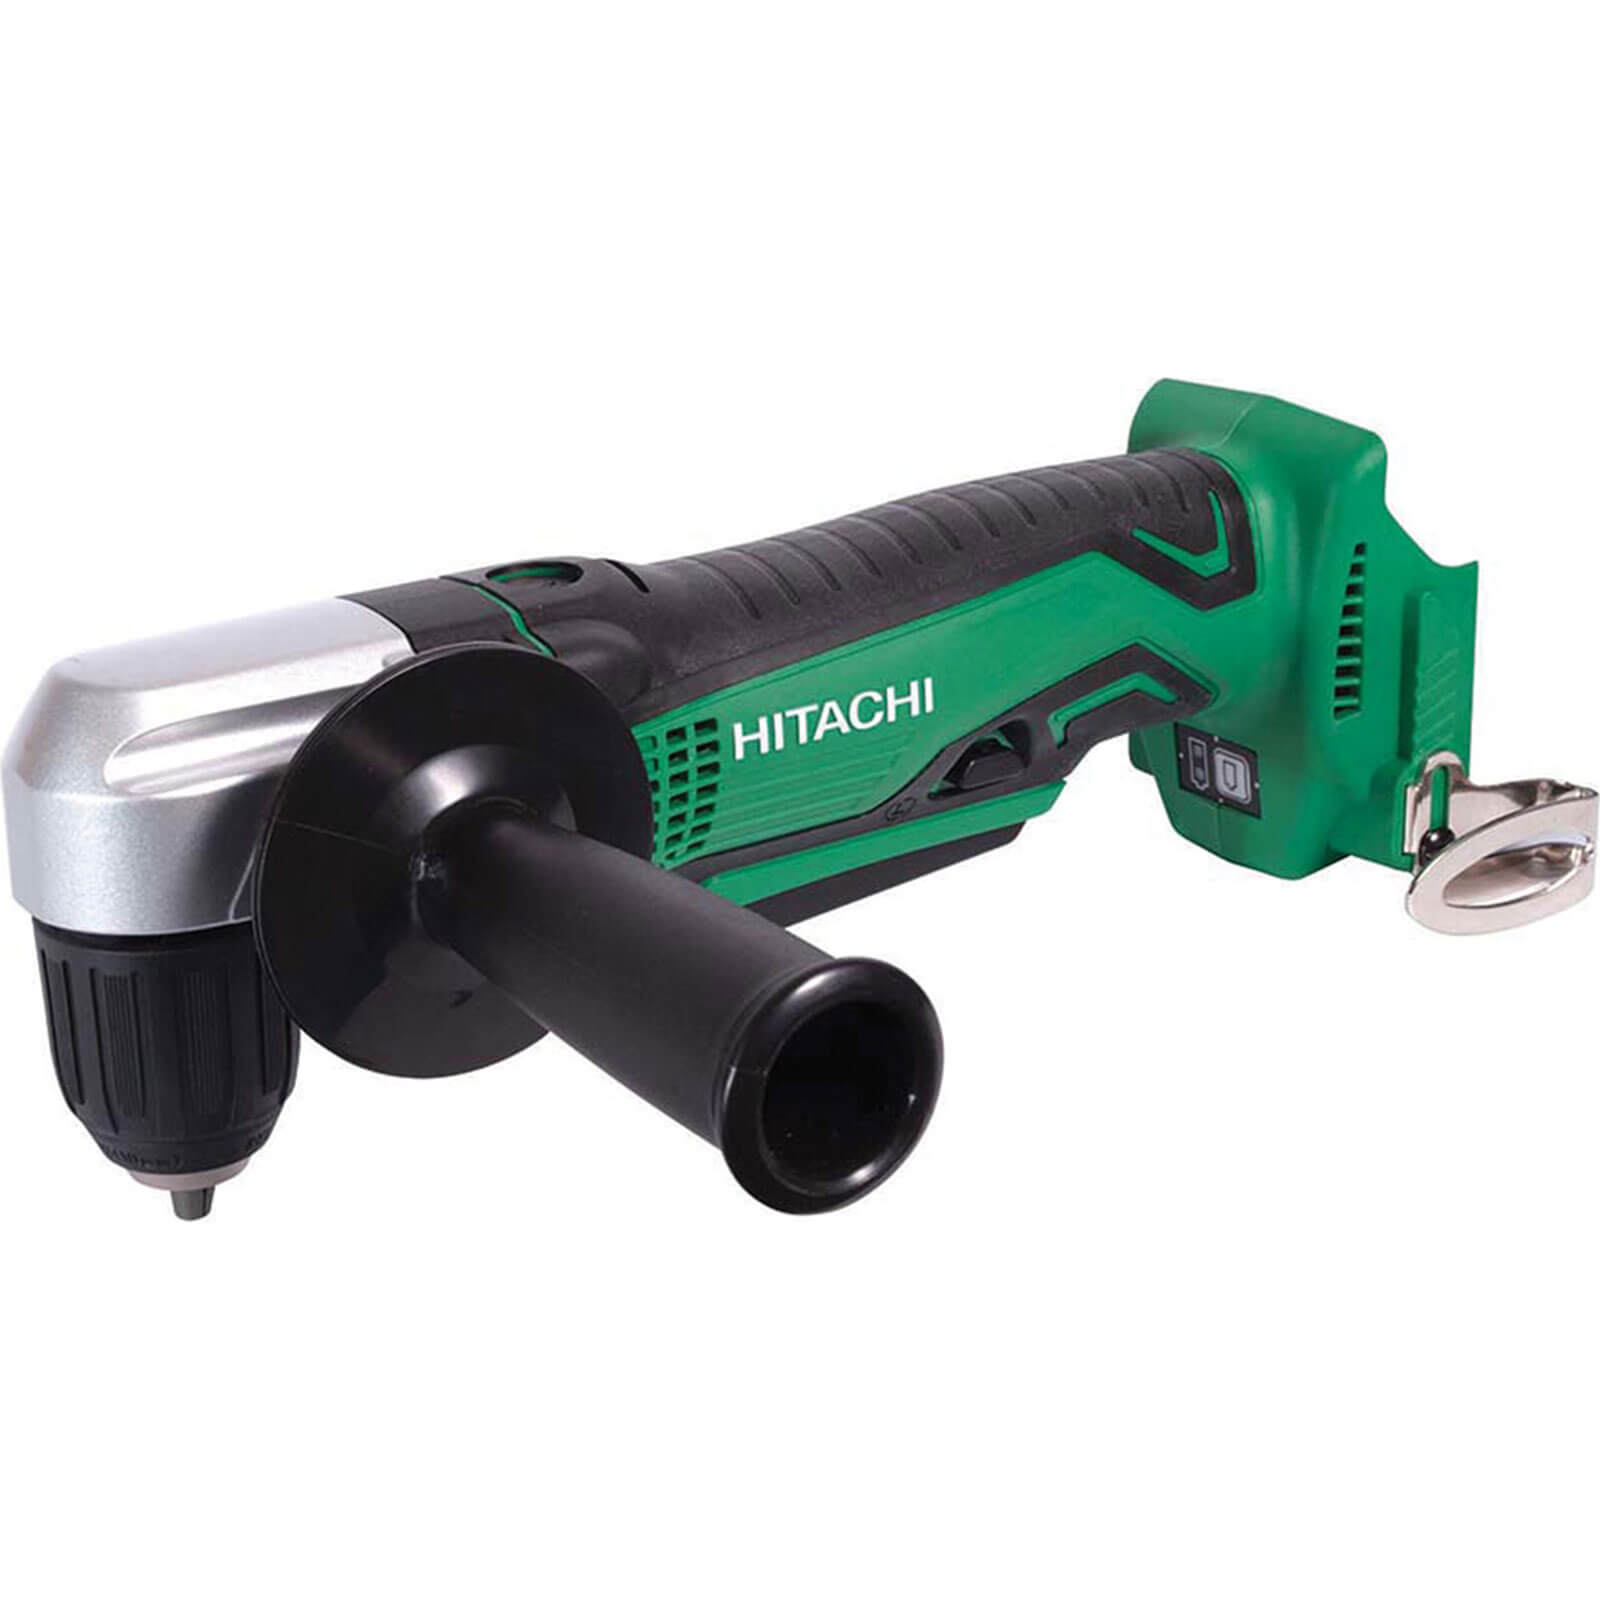 Hitachi DN18DSL 18v Cordless Angle Drill without Battery or Charger